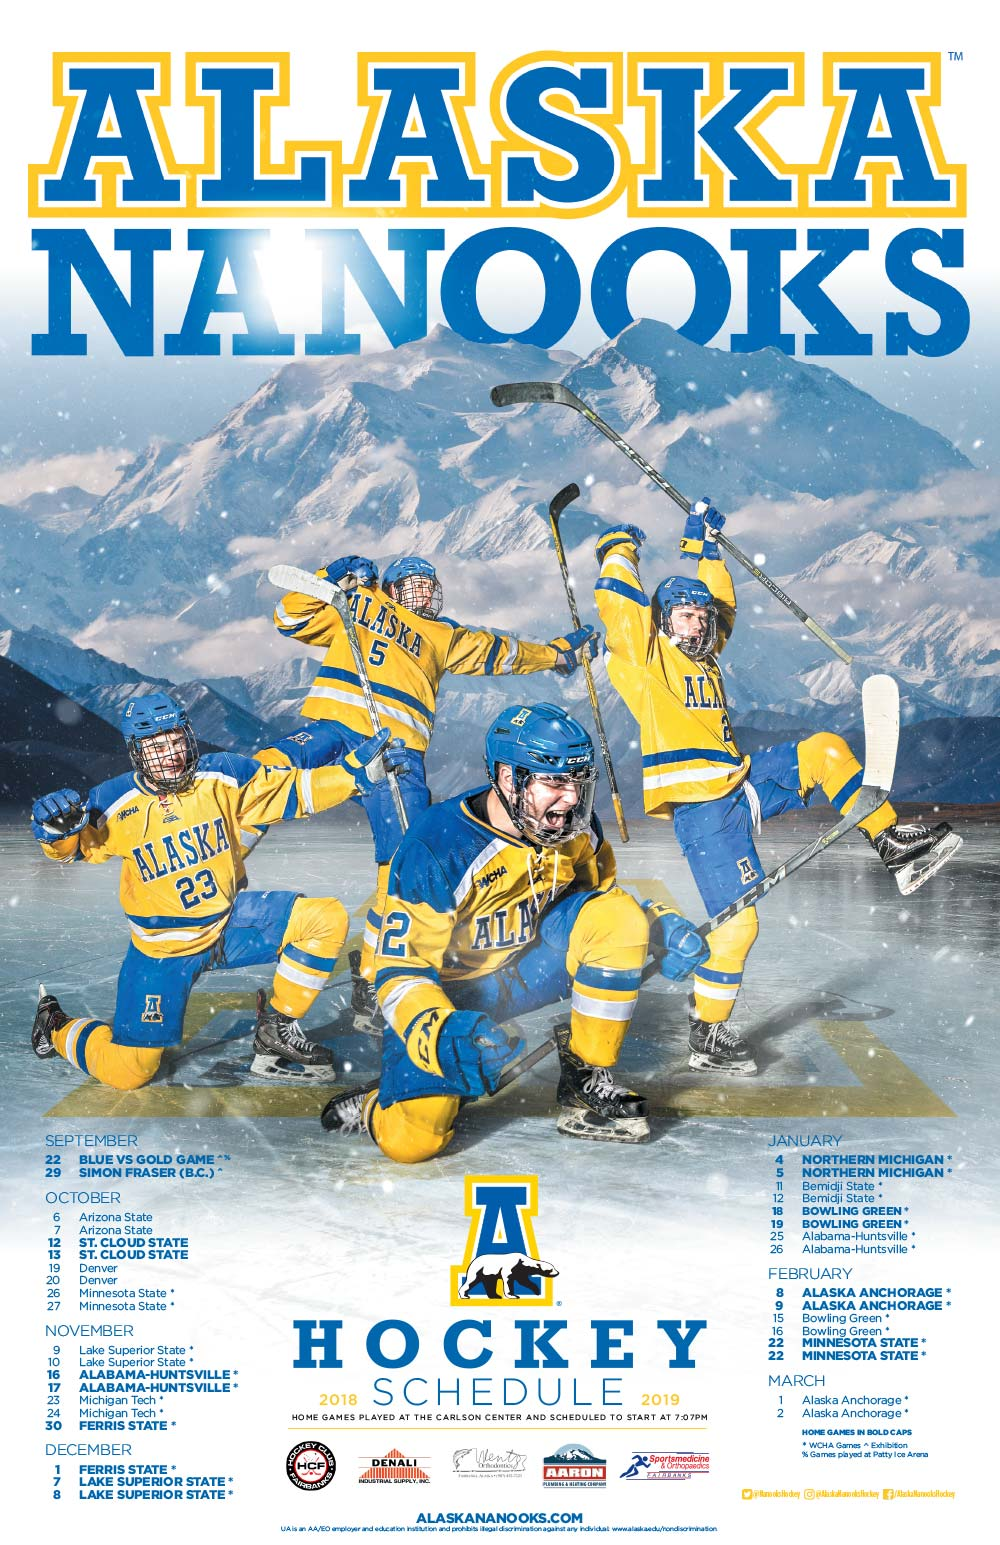 2018 Hockey Poster<br><span>University of Alaska Fairbanks</span>